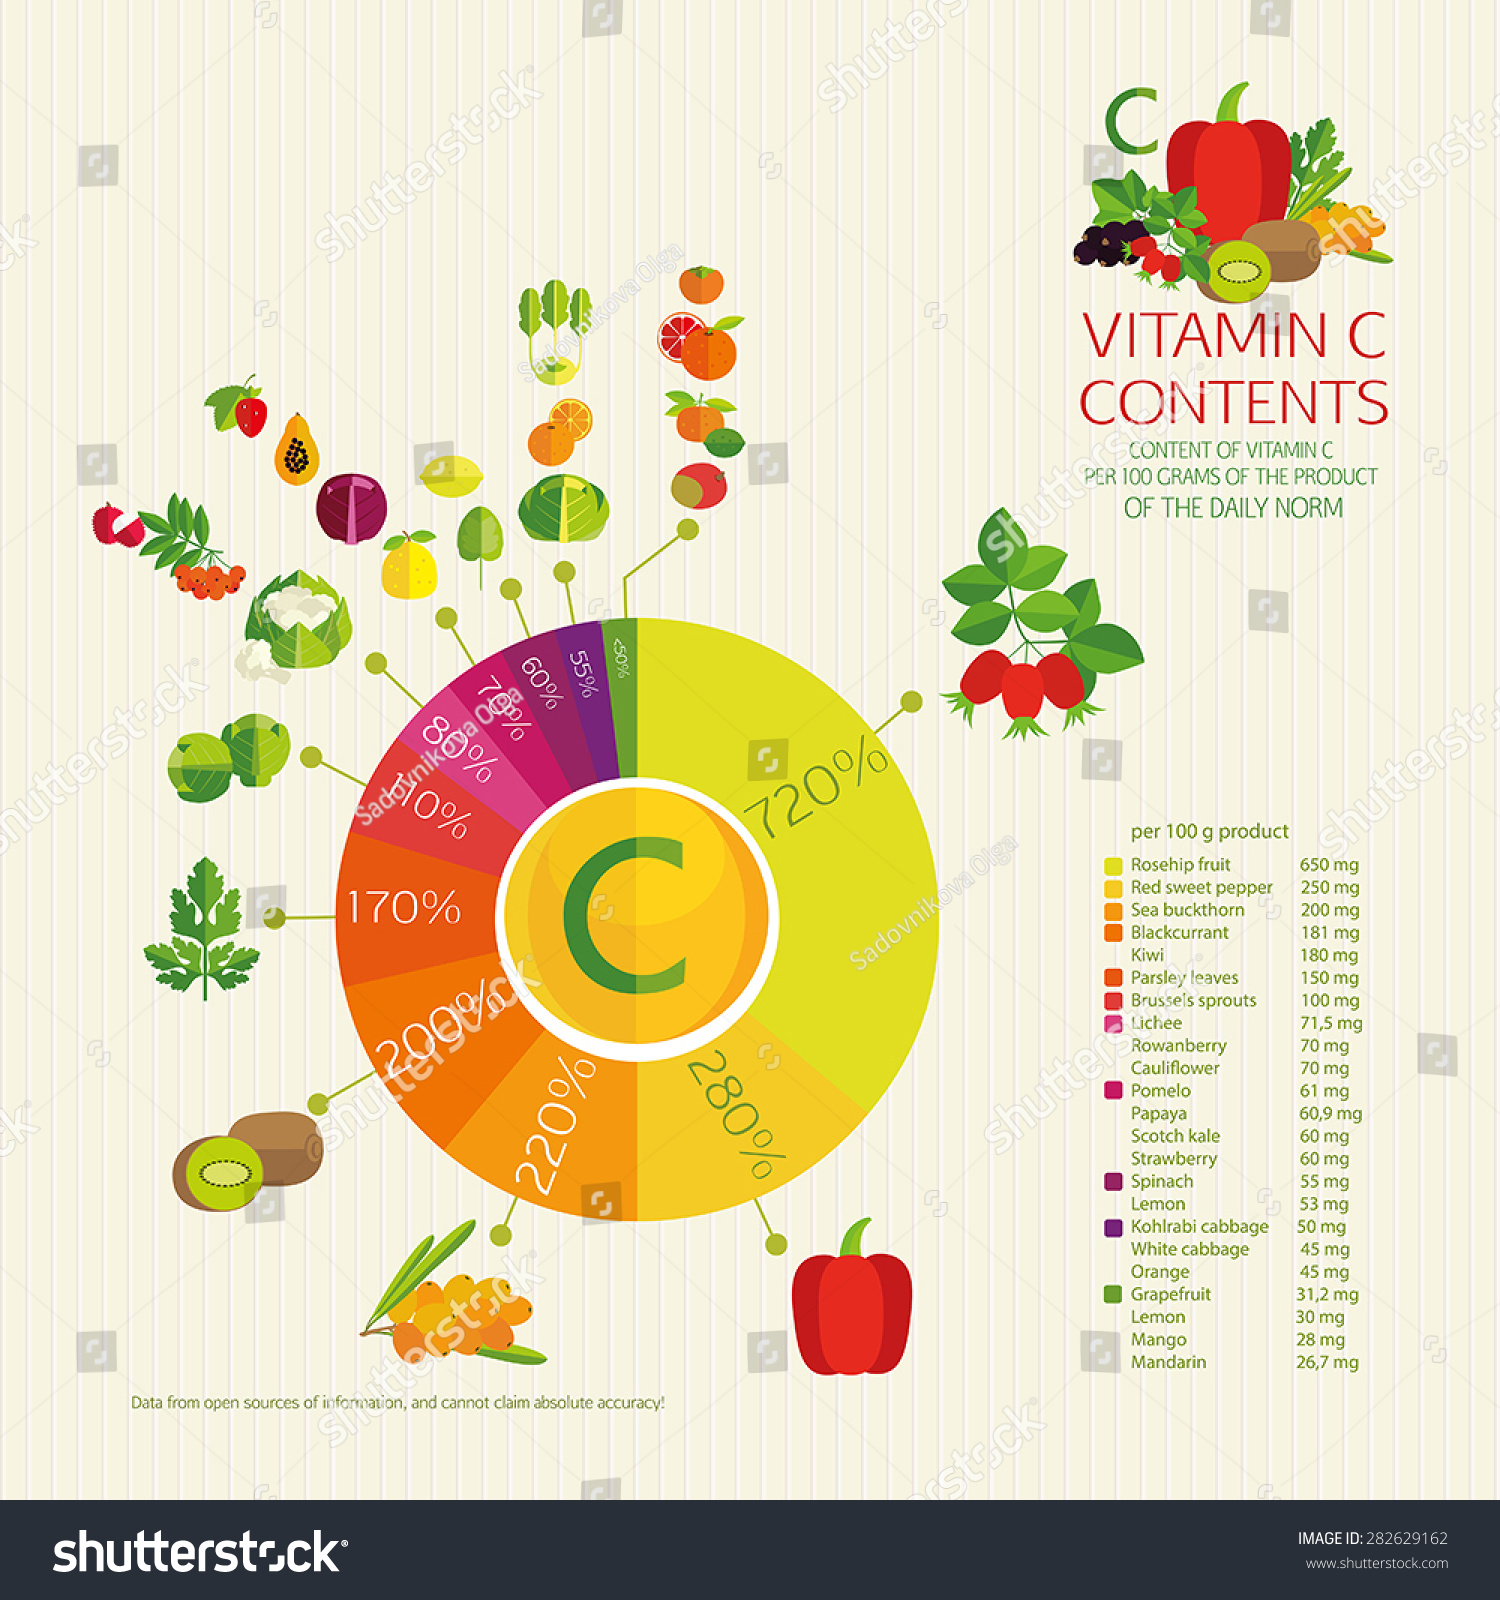 diagram vitamin c content vegetables fruits and berries. Black Bedroom Furniture Sets. Home Design Ideas